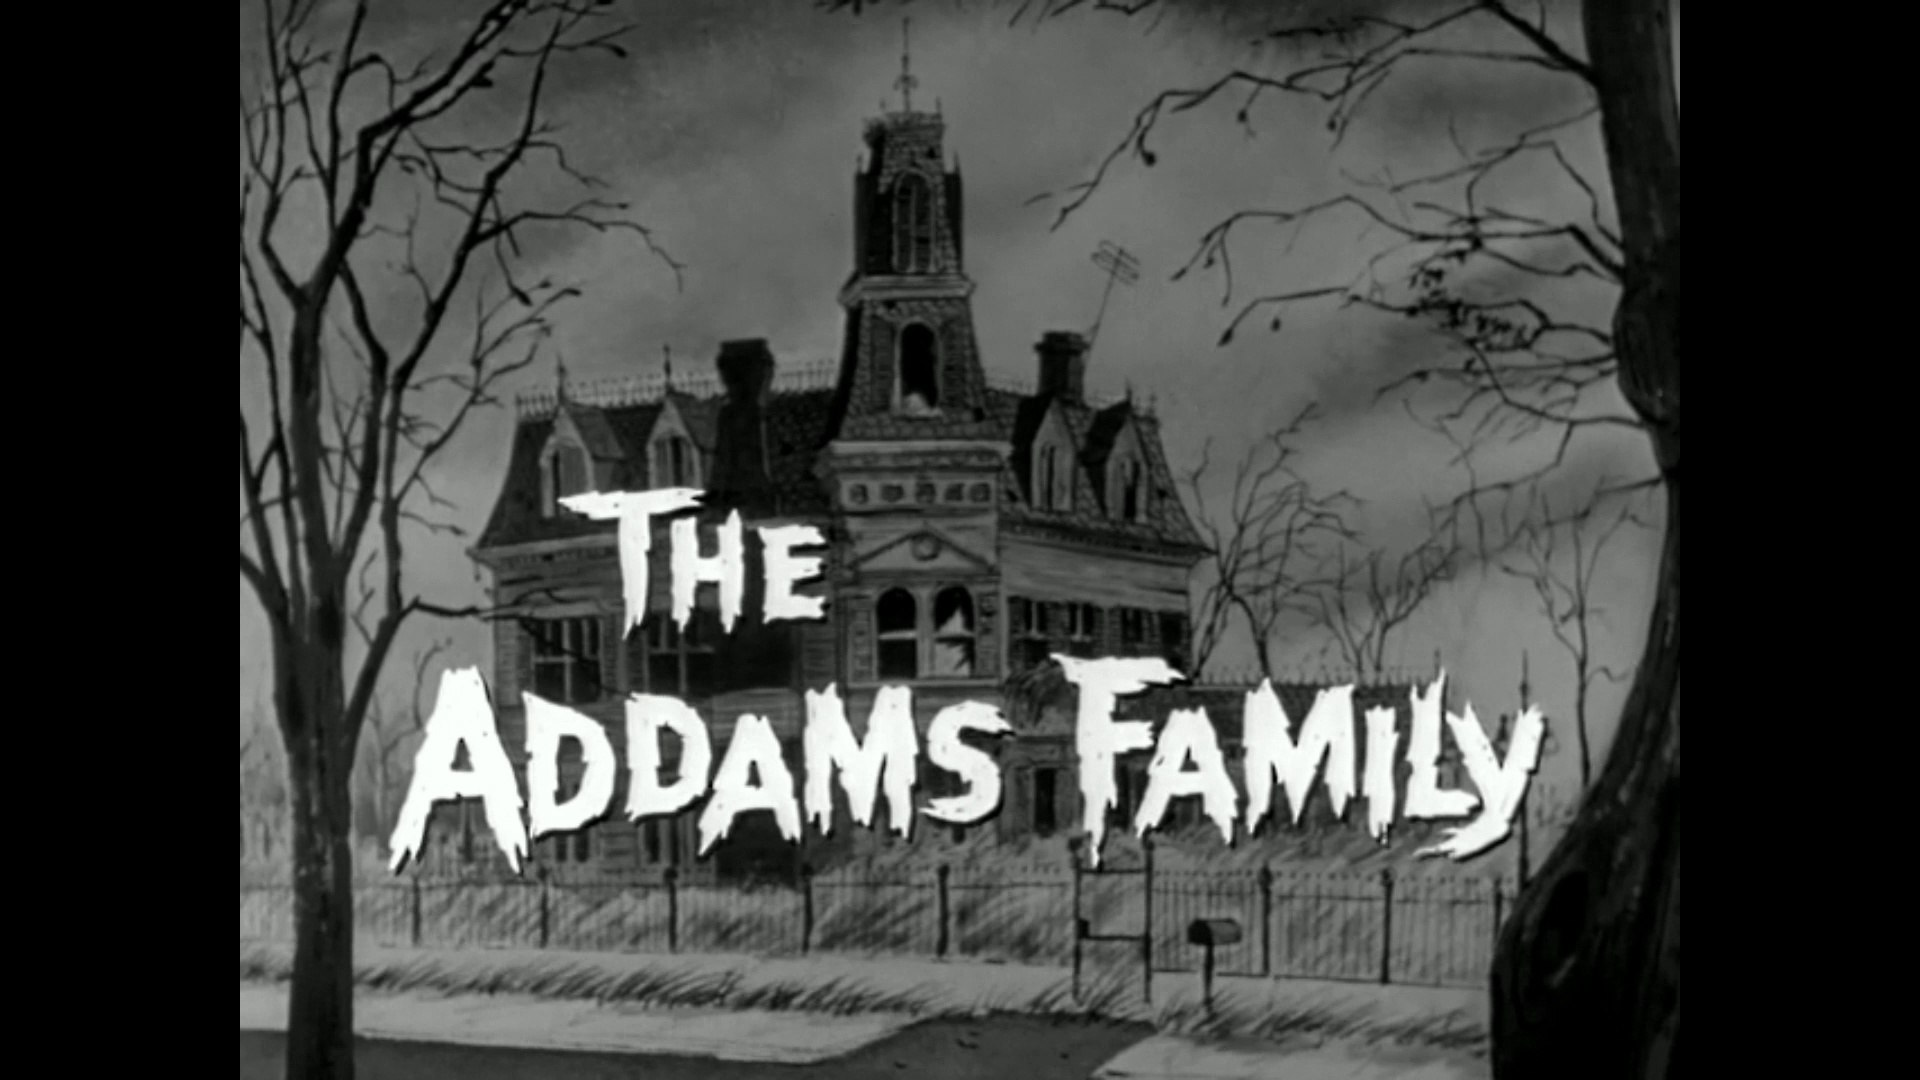 The Addams Family: The Addams Family Tree (review)